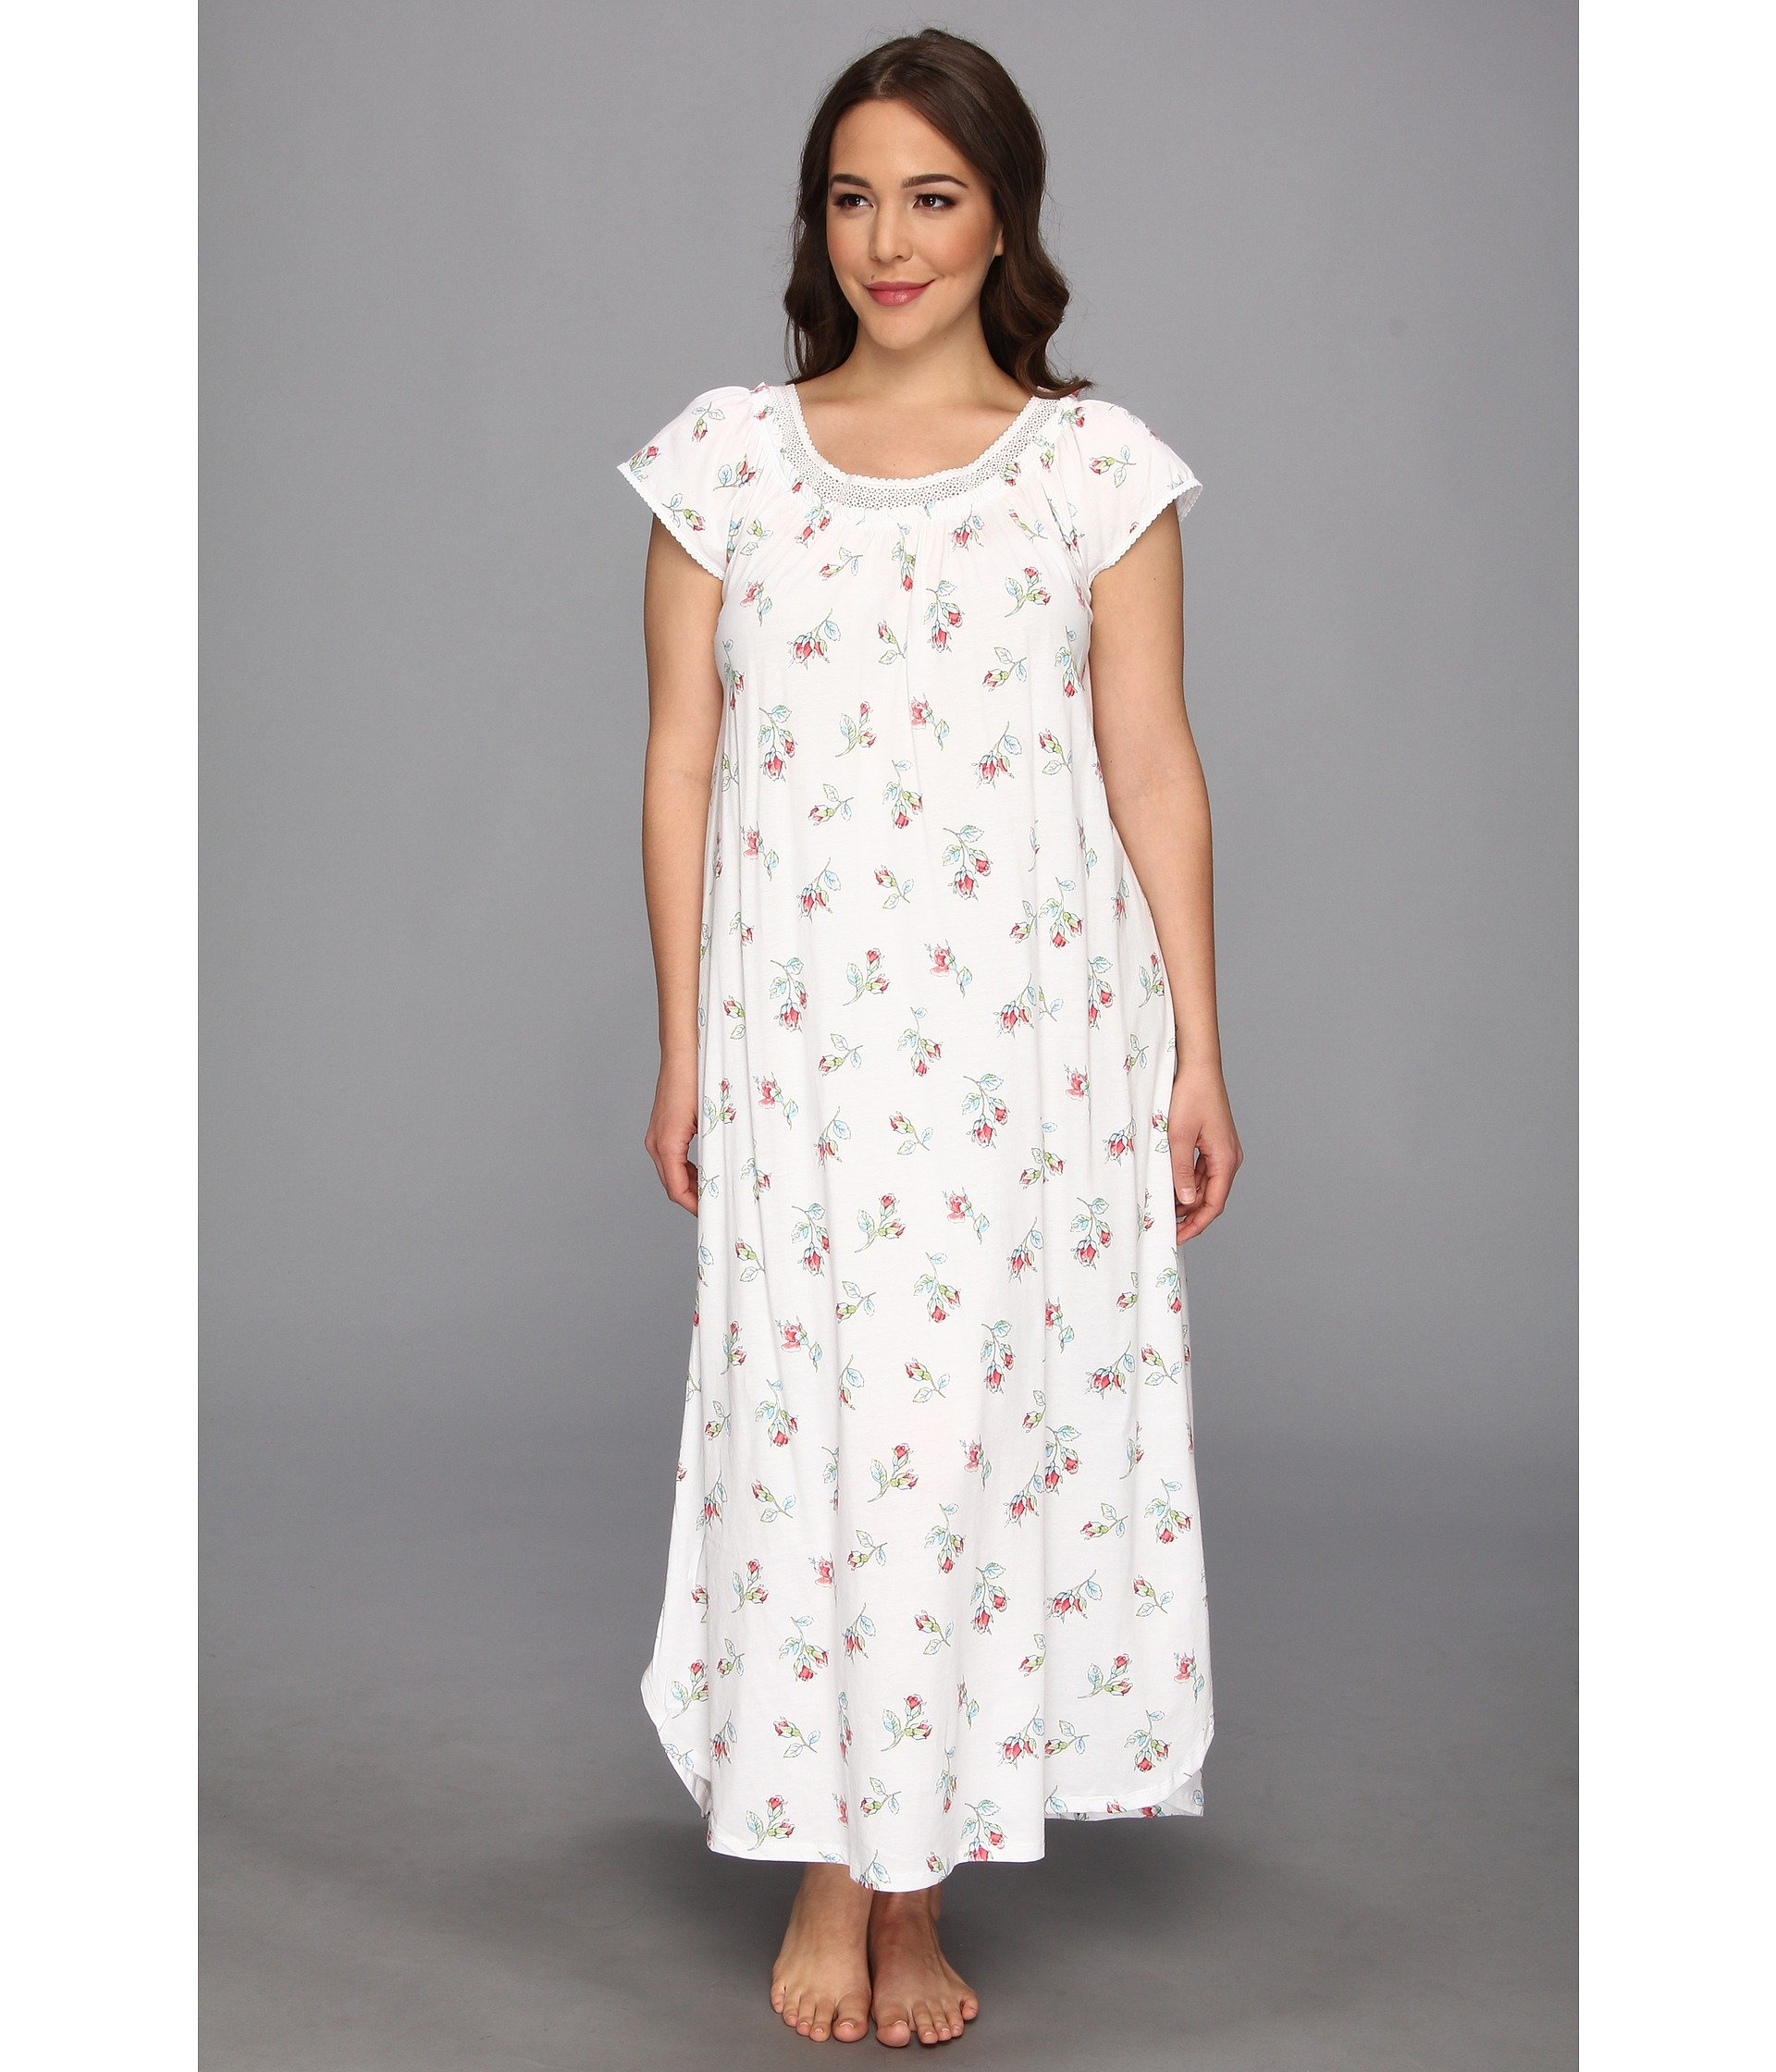 Lyst - Carole Hochman Plus Size Whistful Rosebuds Long Nightgown in ...